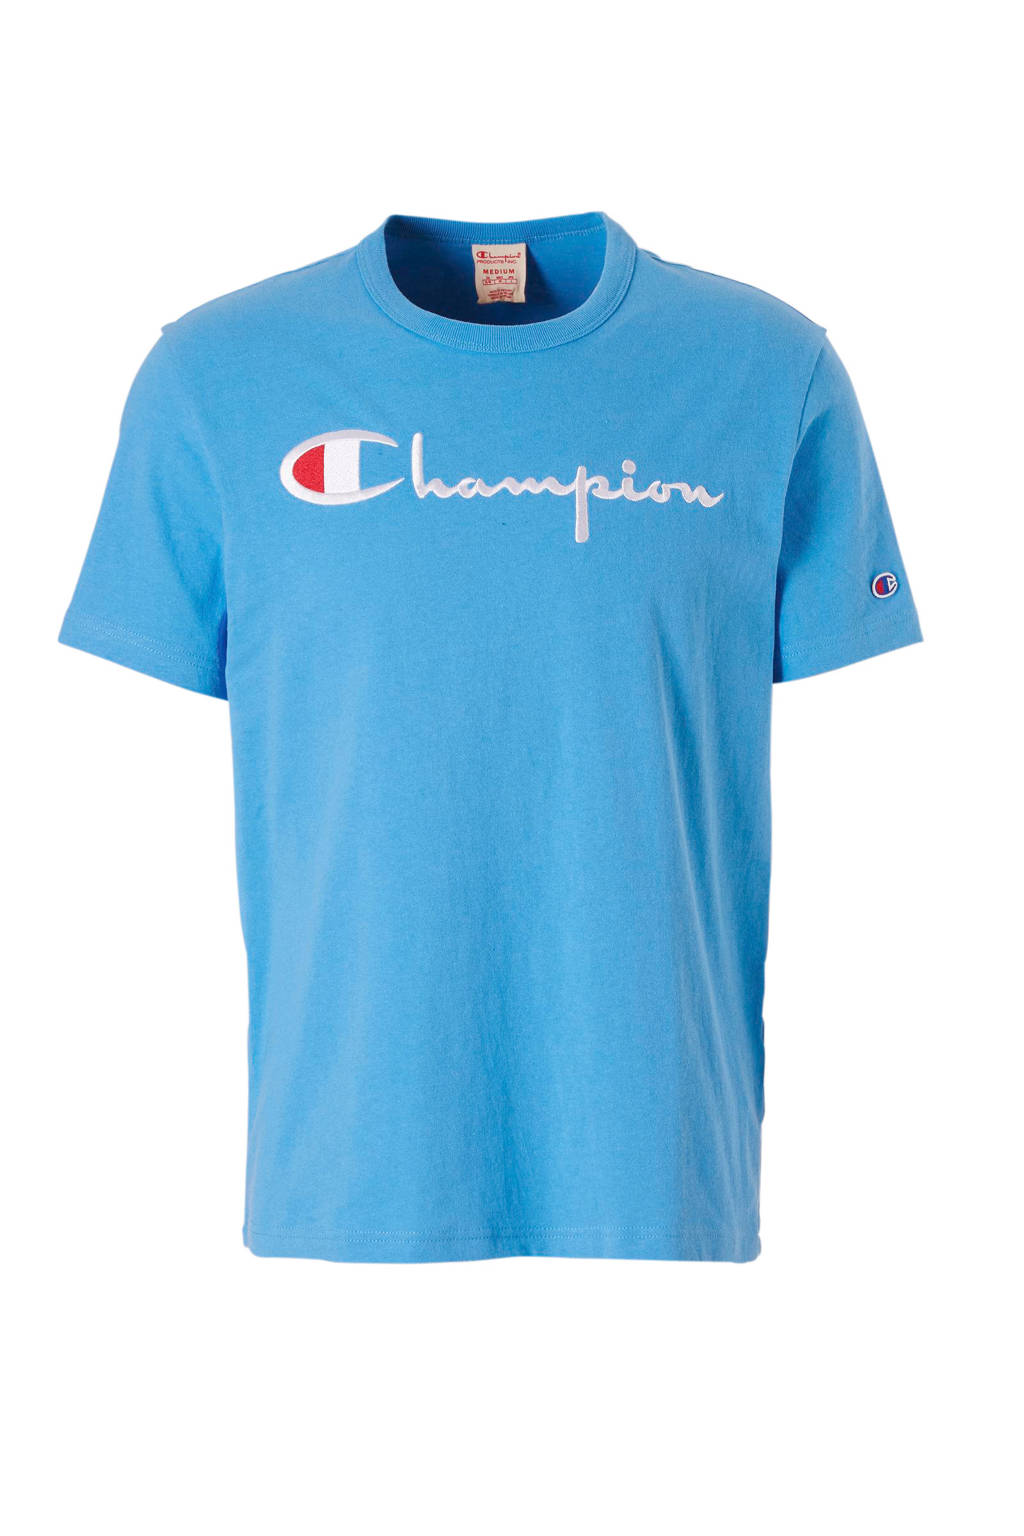 Champion T-shirt, Blauw